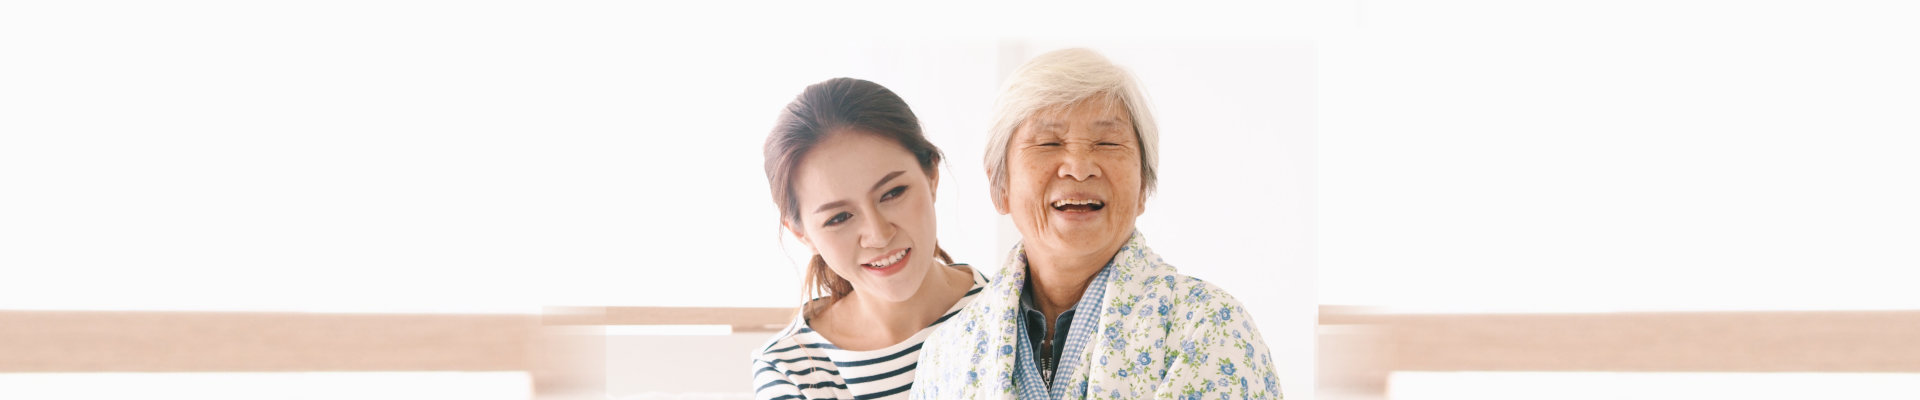 senior and beautiful woman smiling